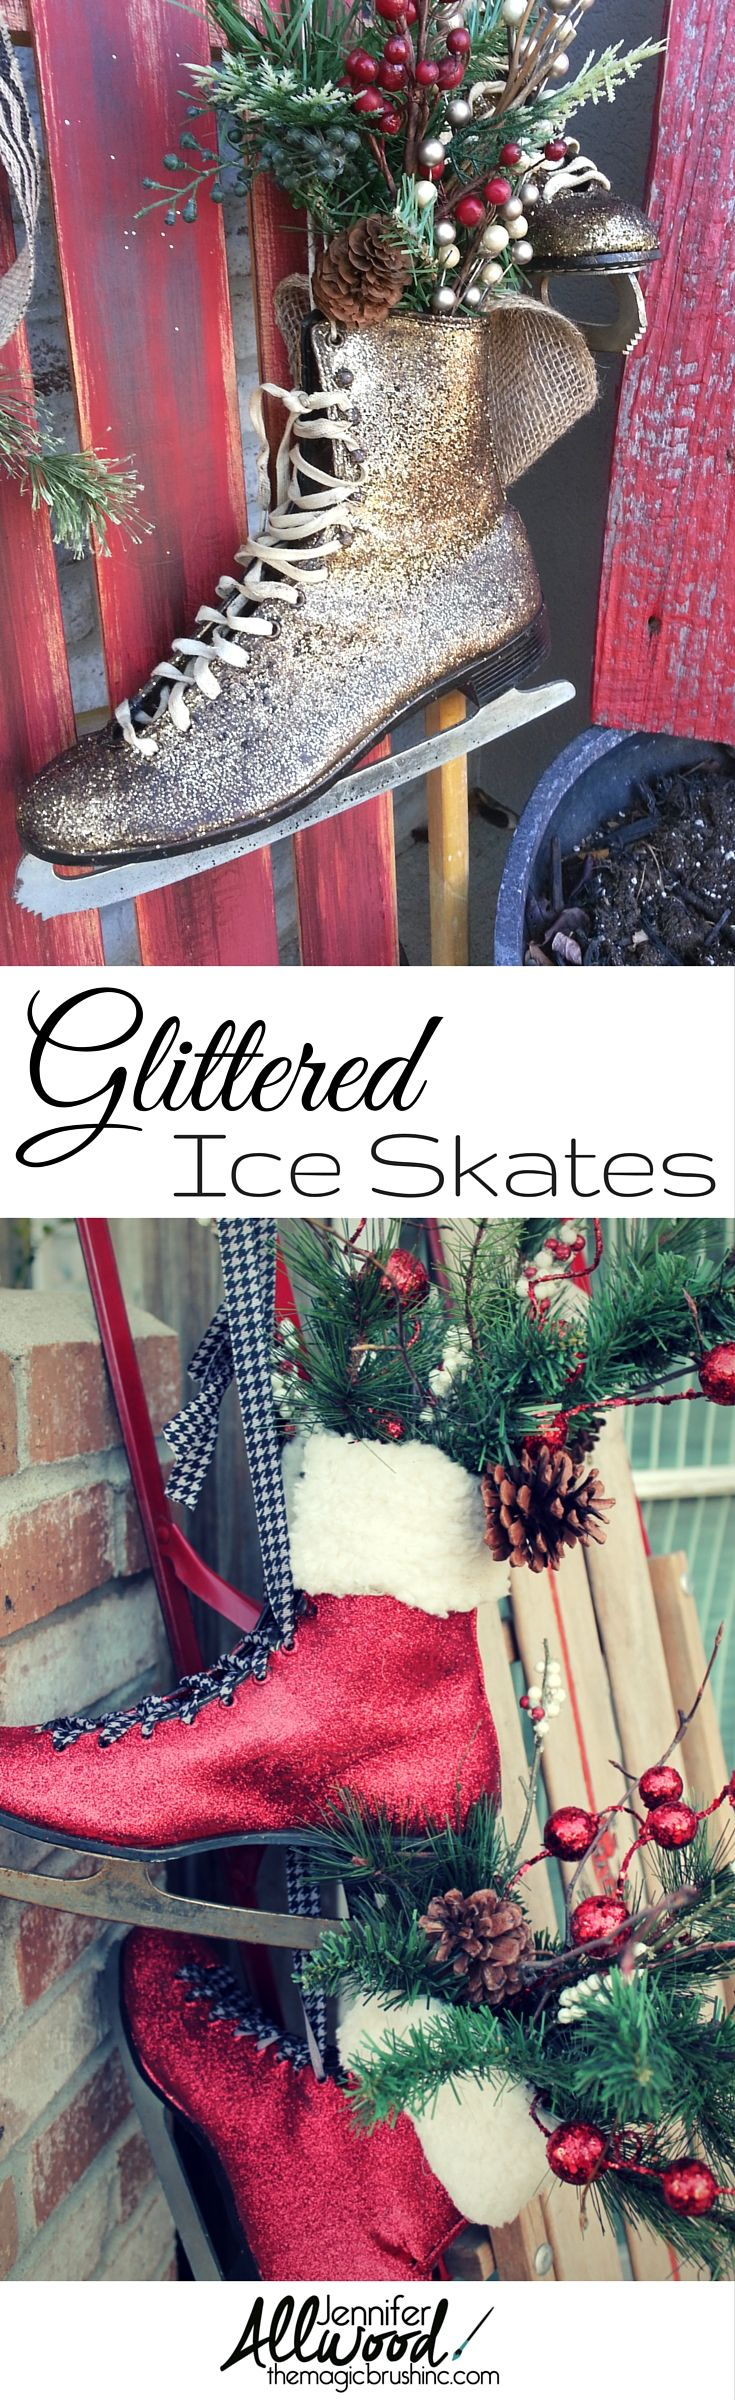 How to make christmas centerpieces with ice - Glittered Ice Skates As Christmas And Winter Decor